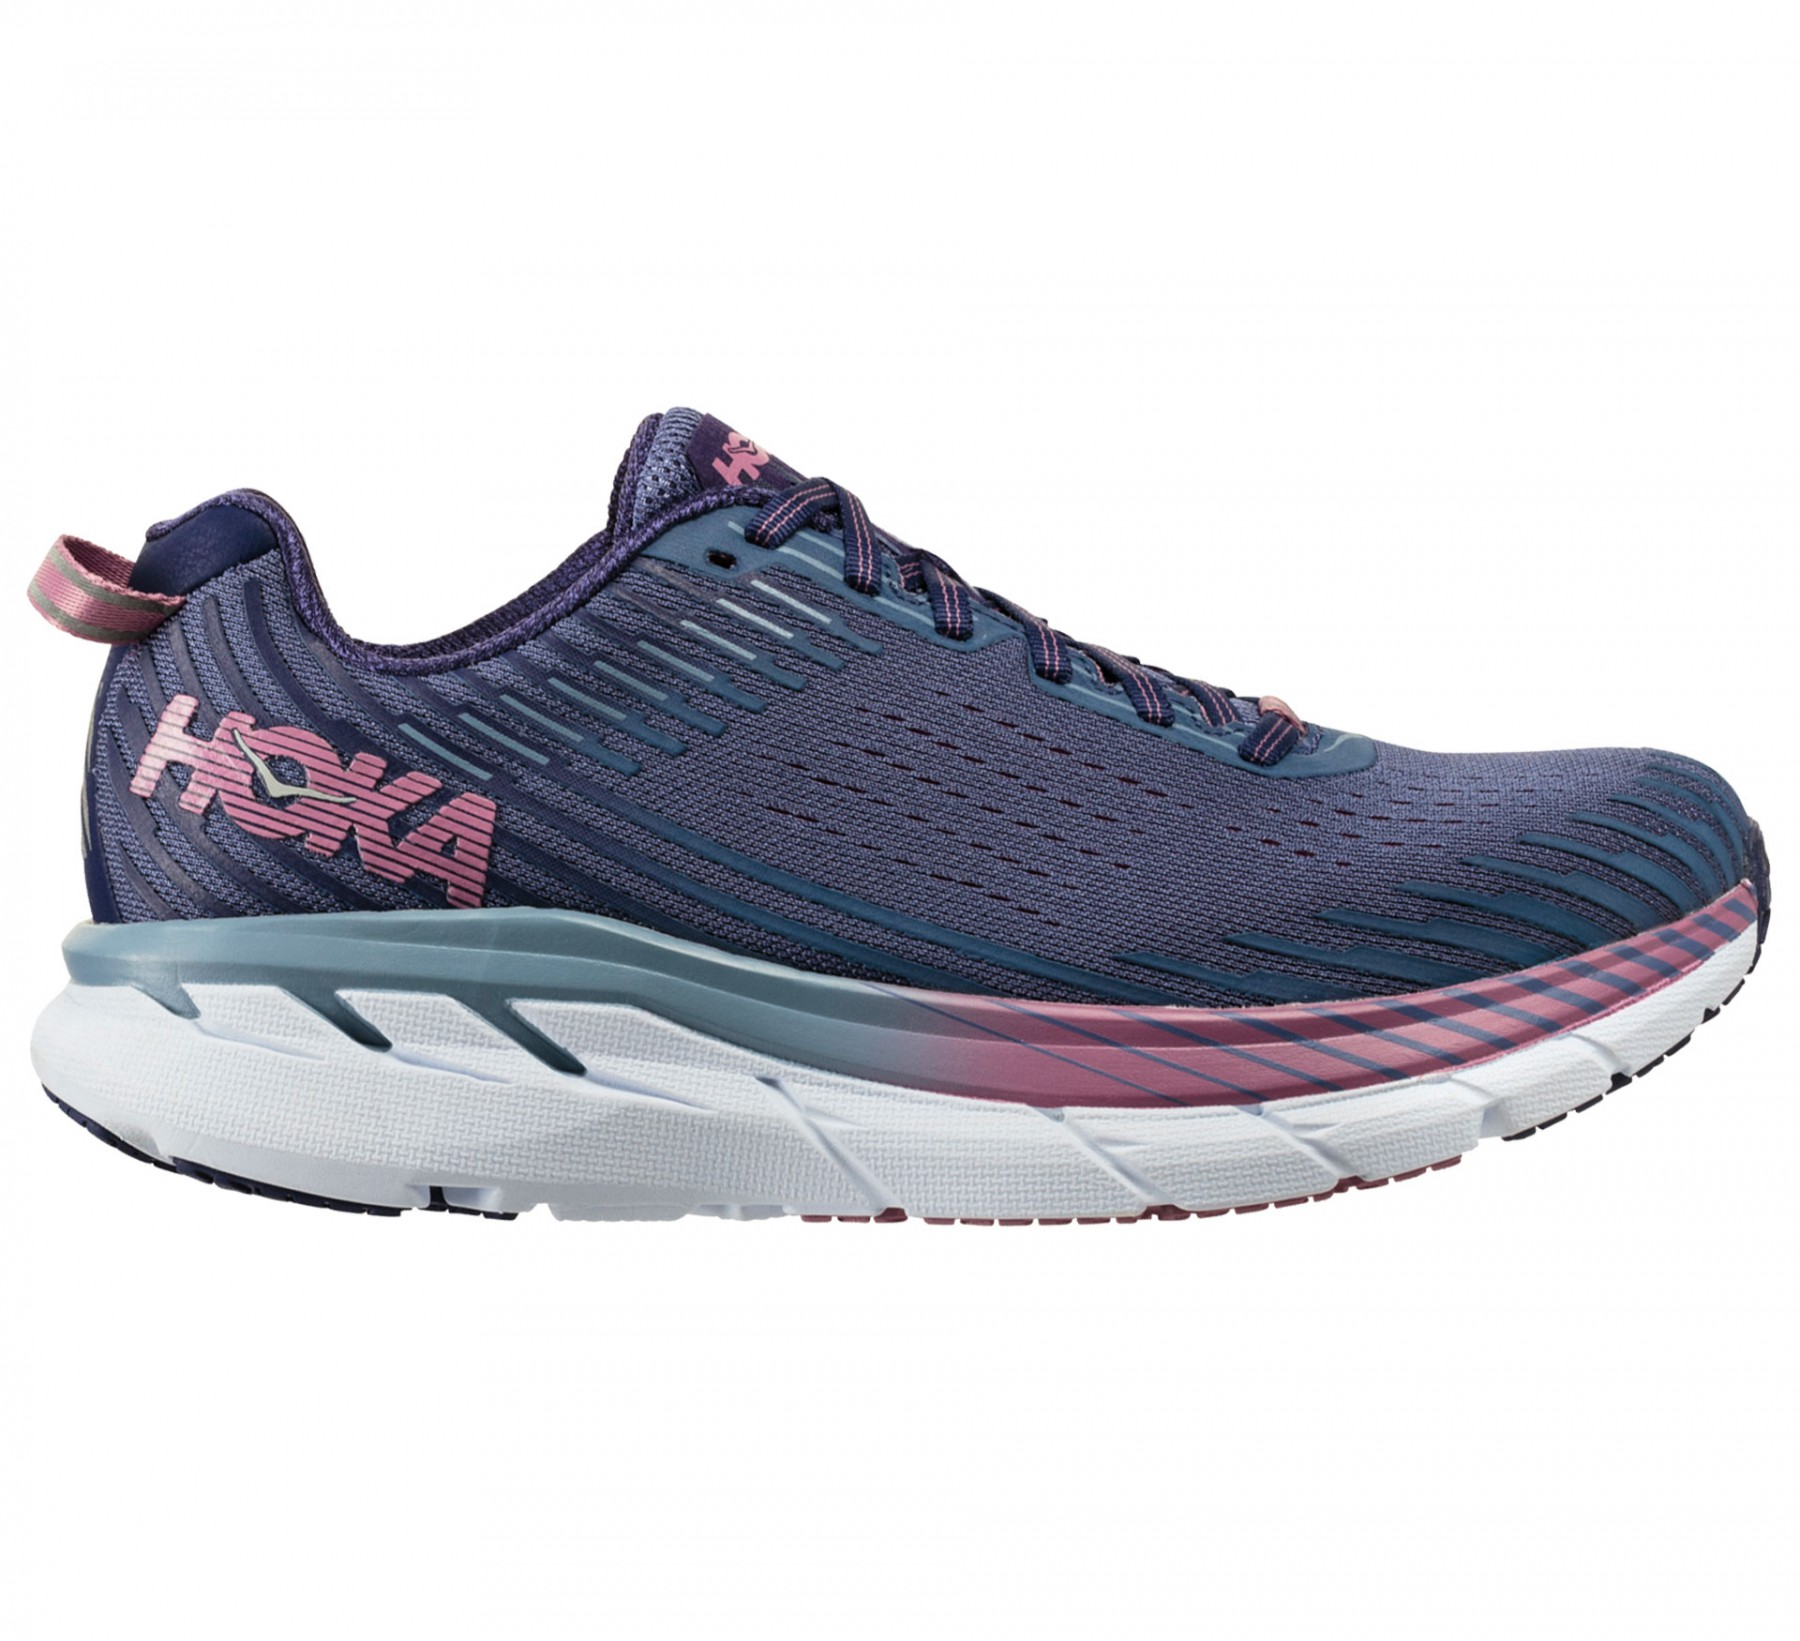 HOKA ONE ONE CLIFTON 5 WOMEN'S